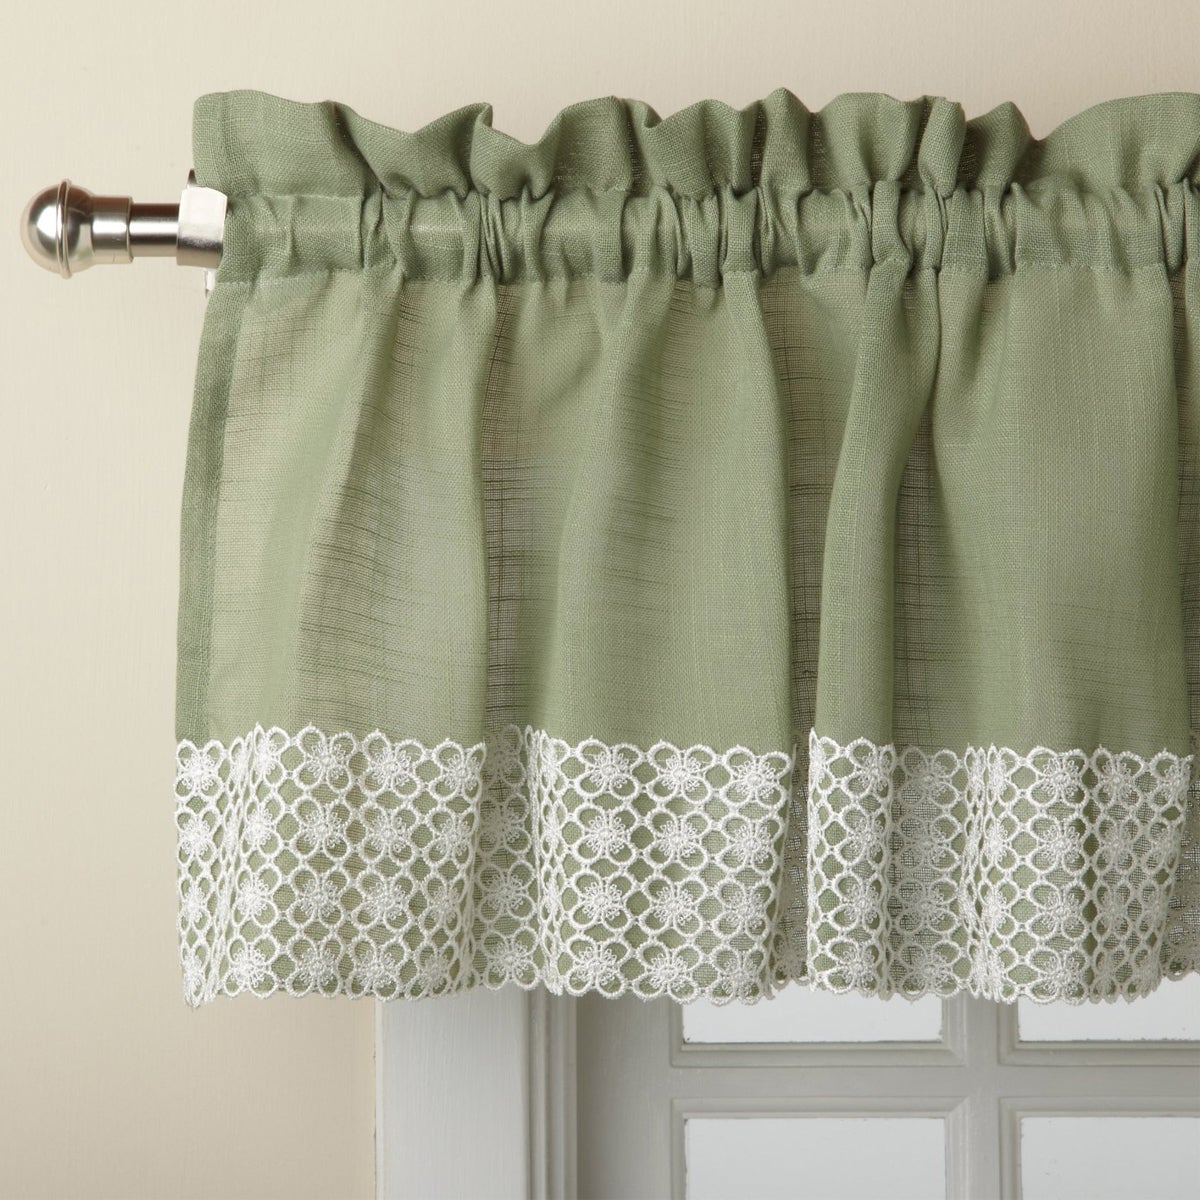 French Vanilla Country Style Curtain Parts With White Daisy Lace Accent Intended For Famous Sage Country Style Curtain Parts With White Daisy Lace Accent  (Separates Tiers, Swags And Valances) (View 7 of 20)